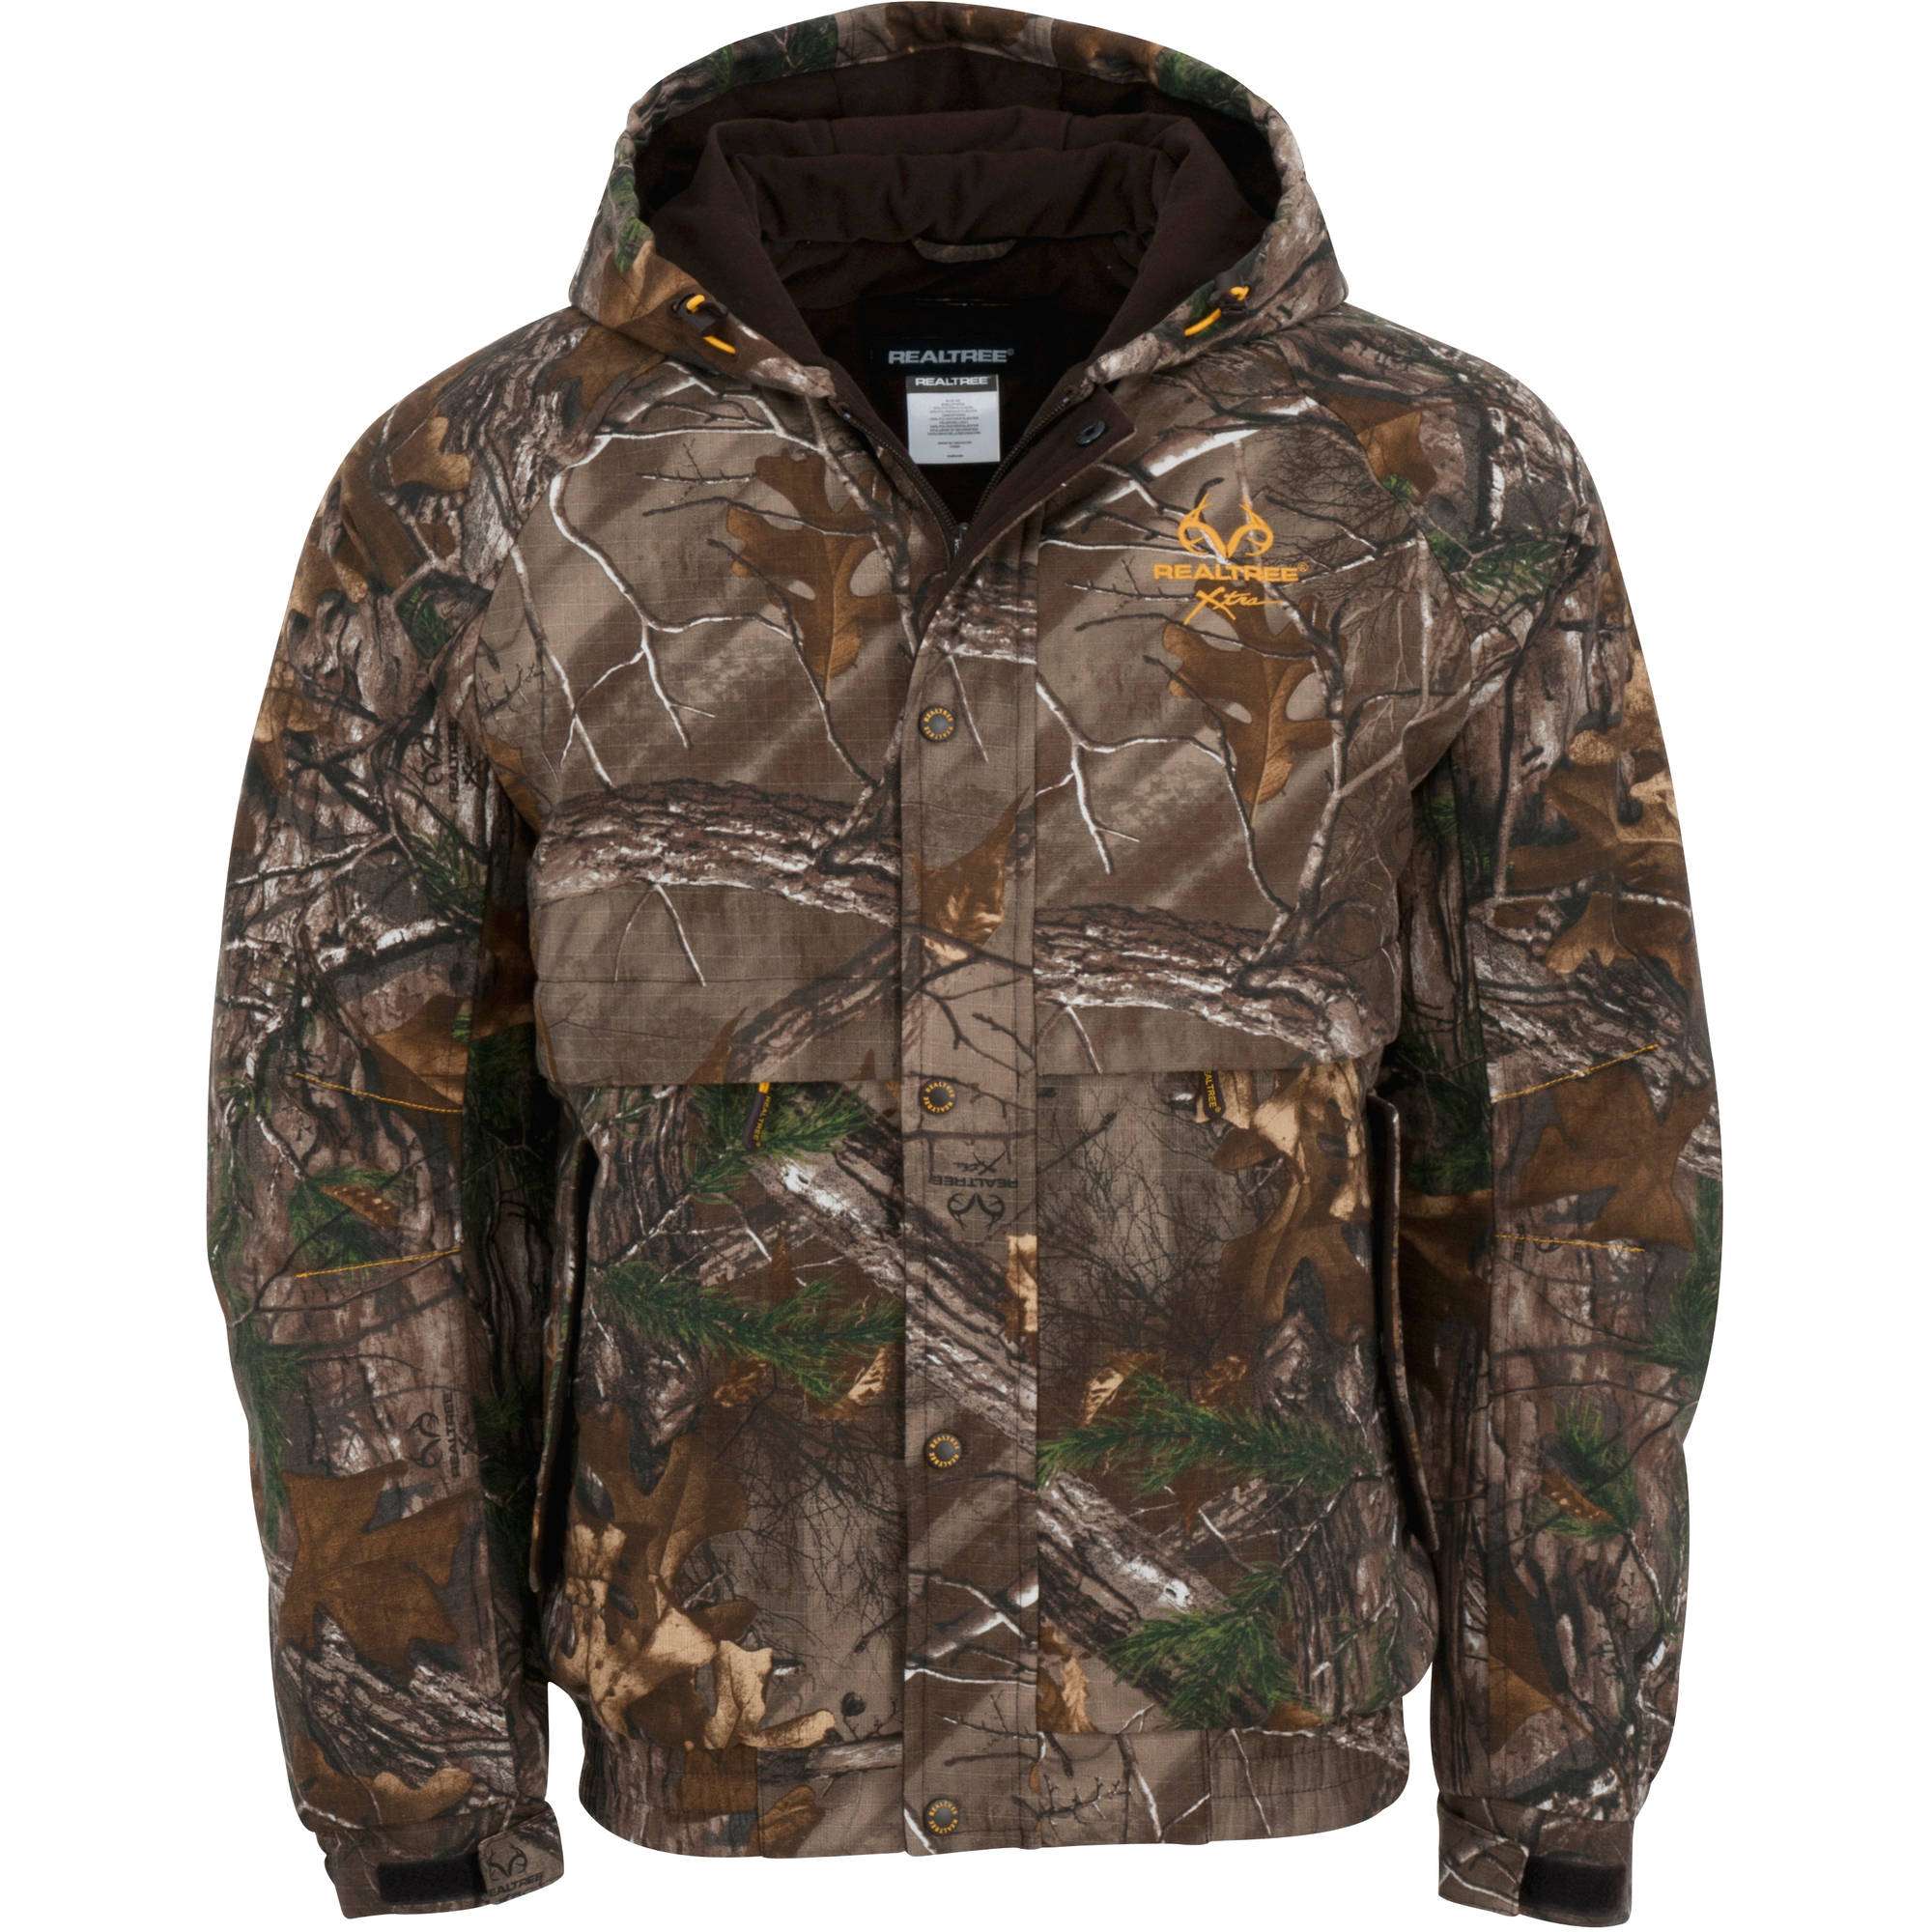 Men's Bomber Jacket, Multiple Patterns